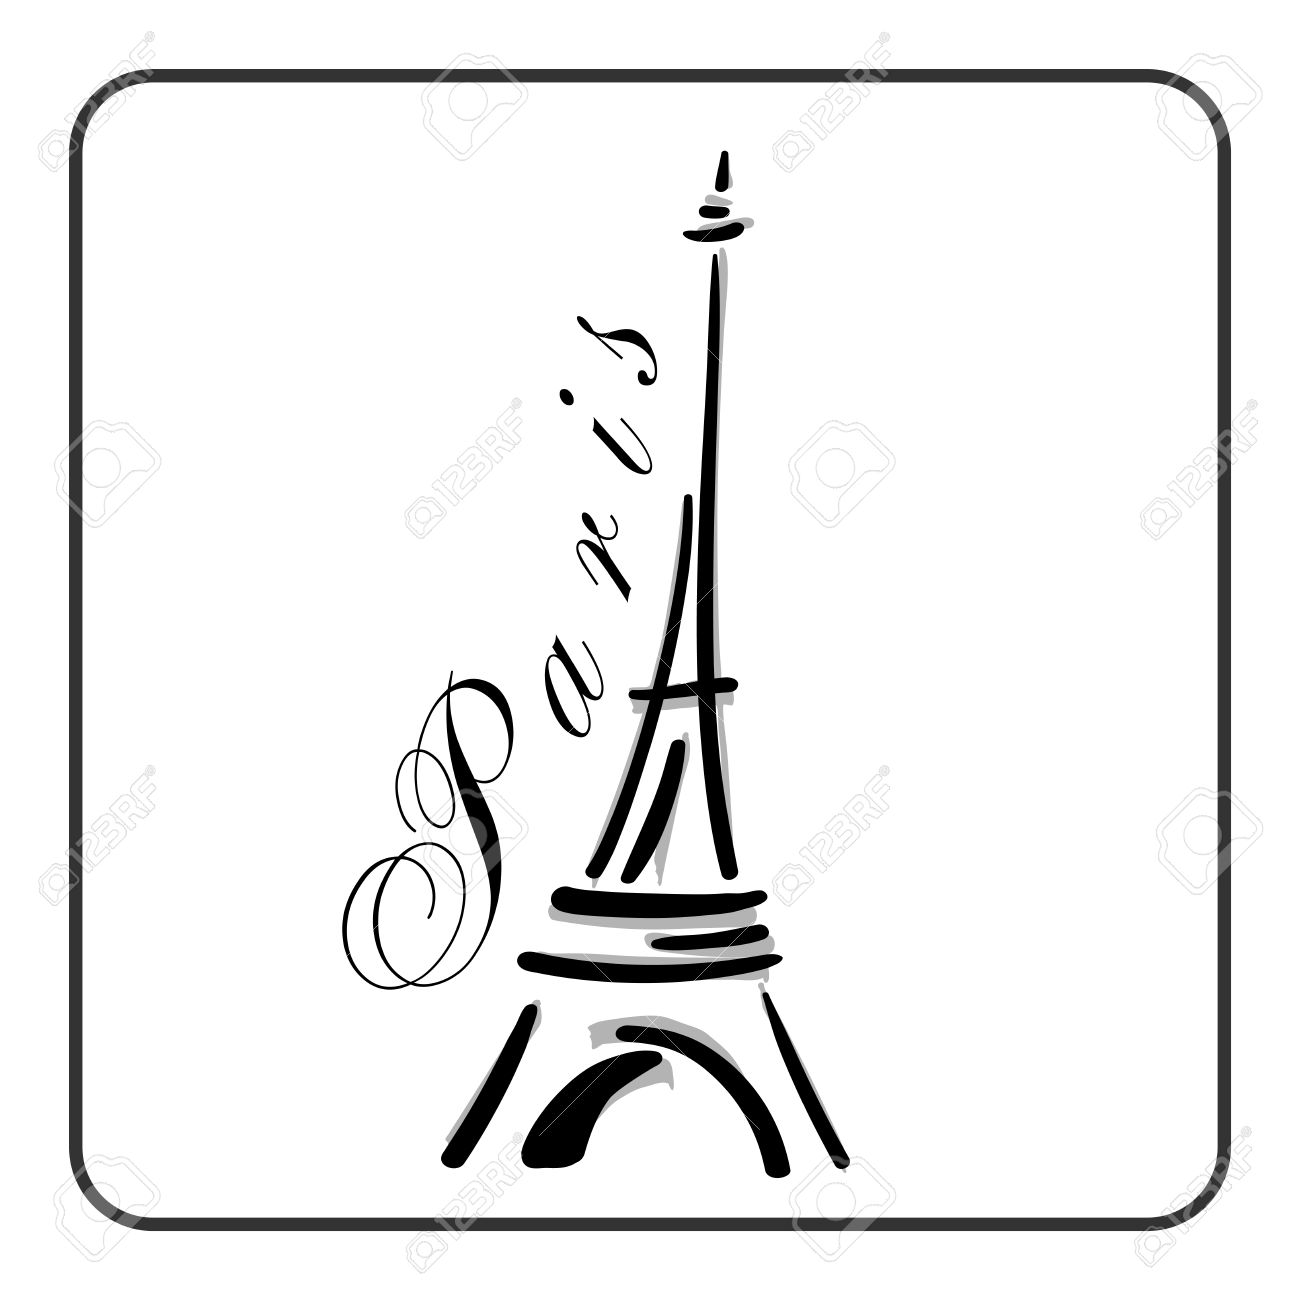 1300x1300 Eiffel Tower In A Simple Sketch Style. Big Famous Symbol Of Paris